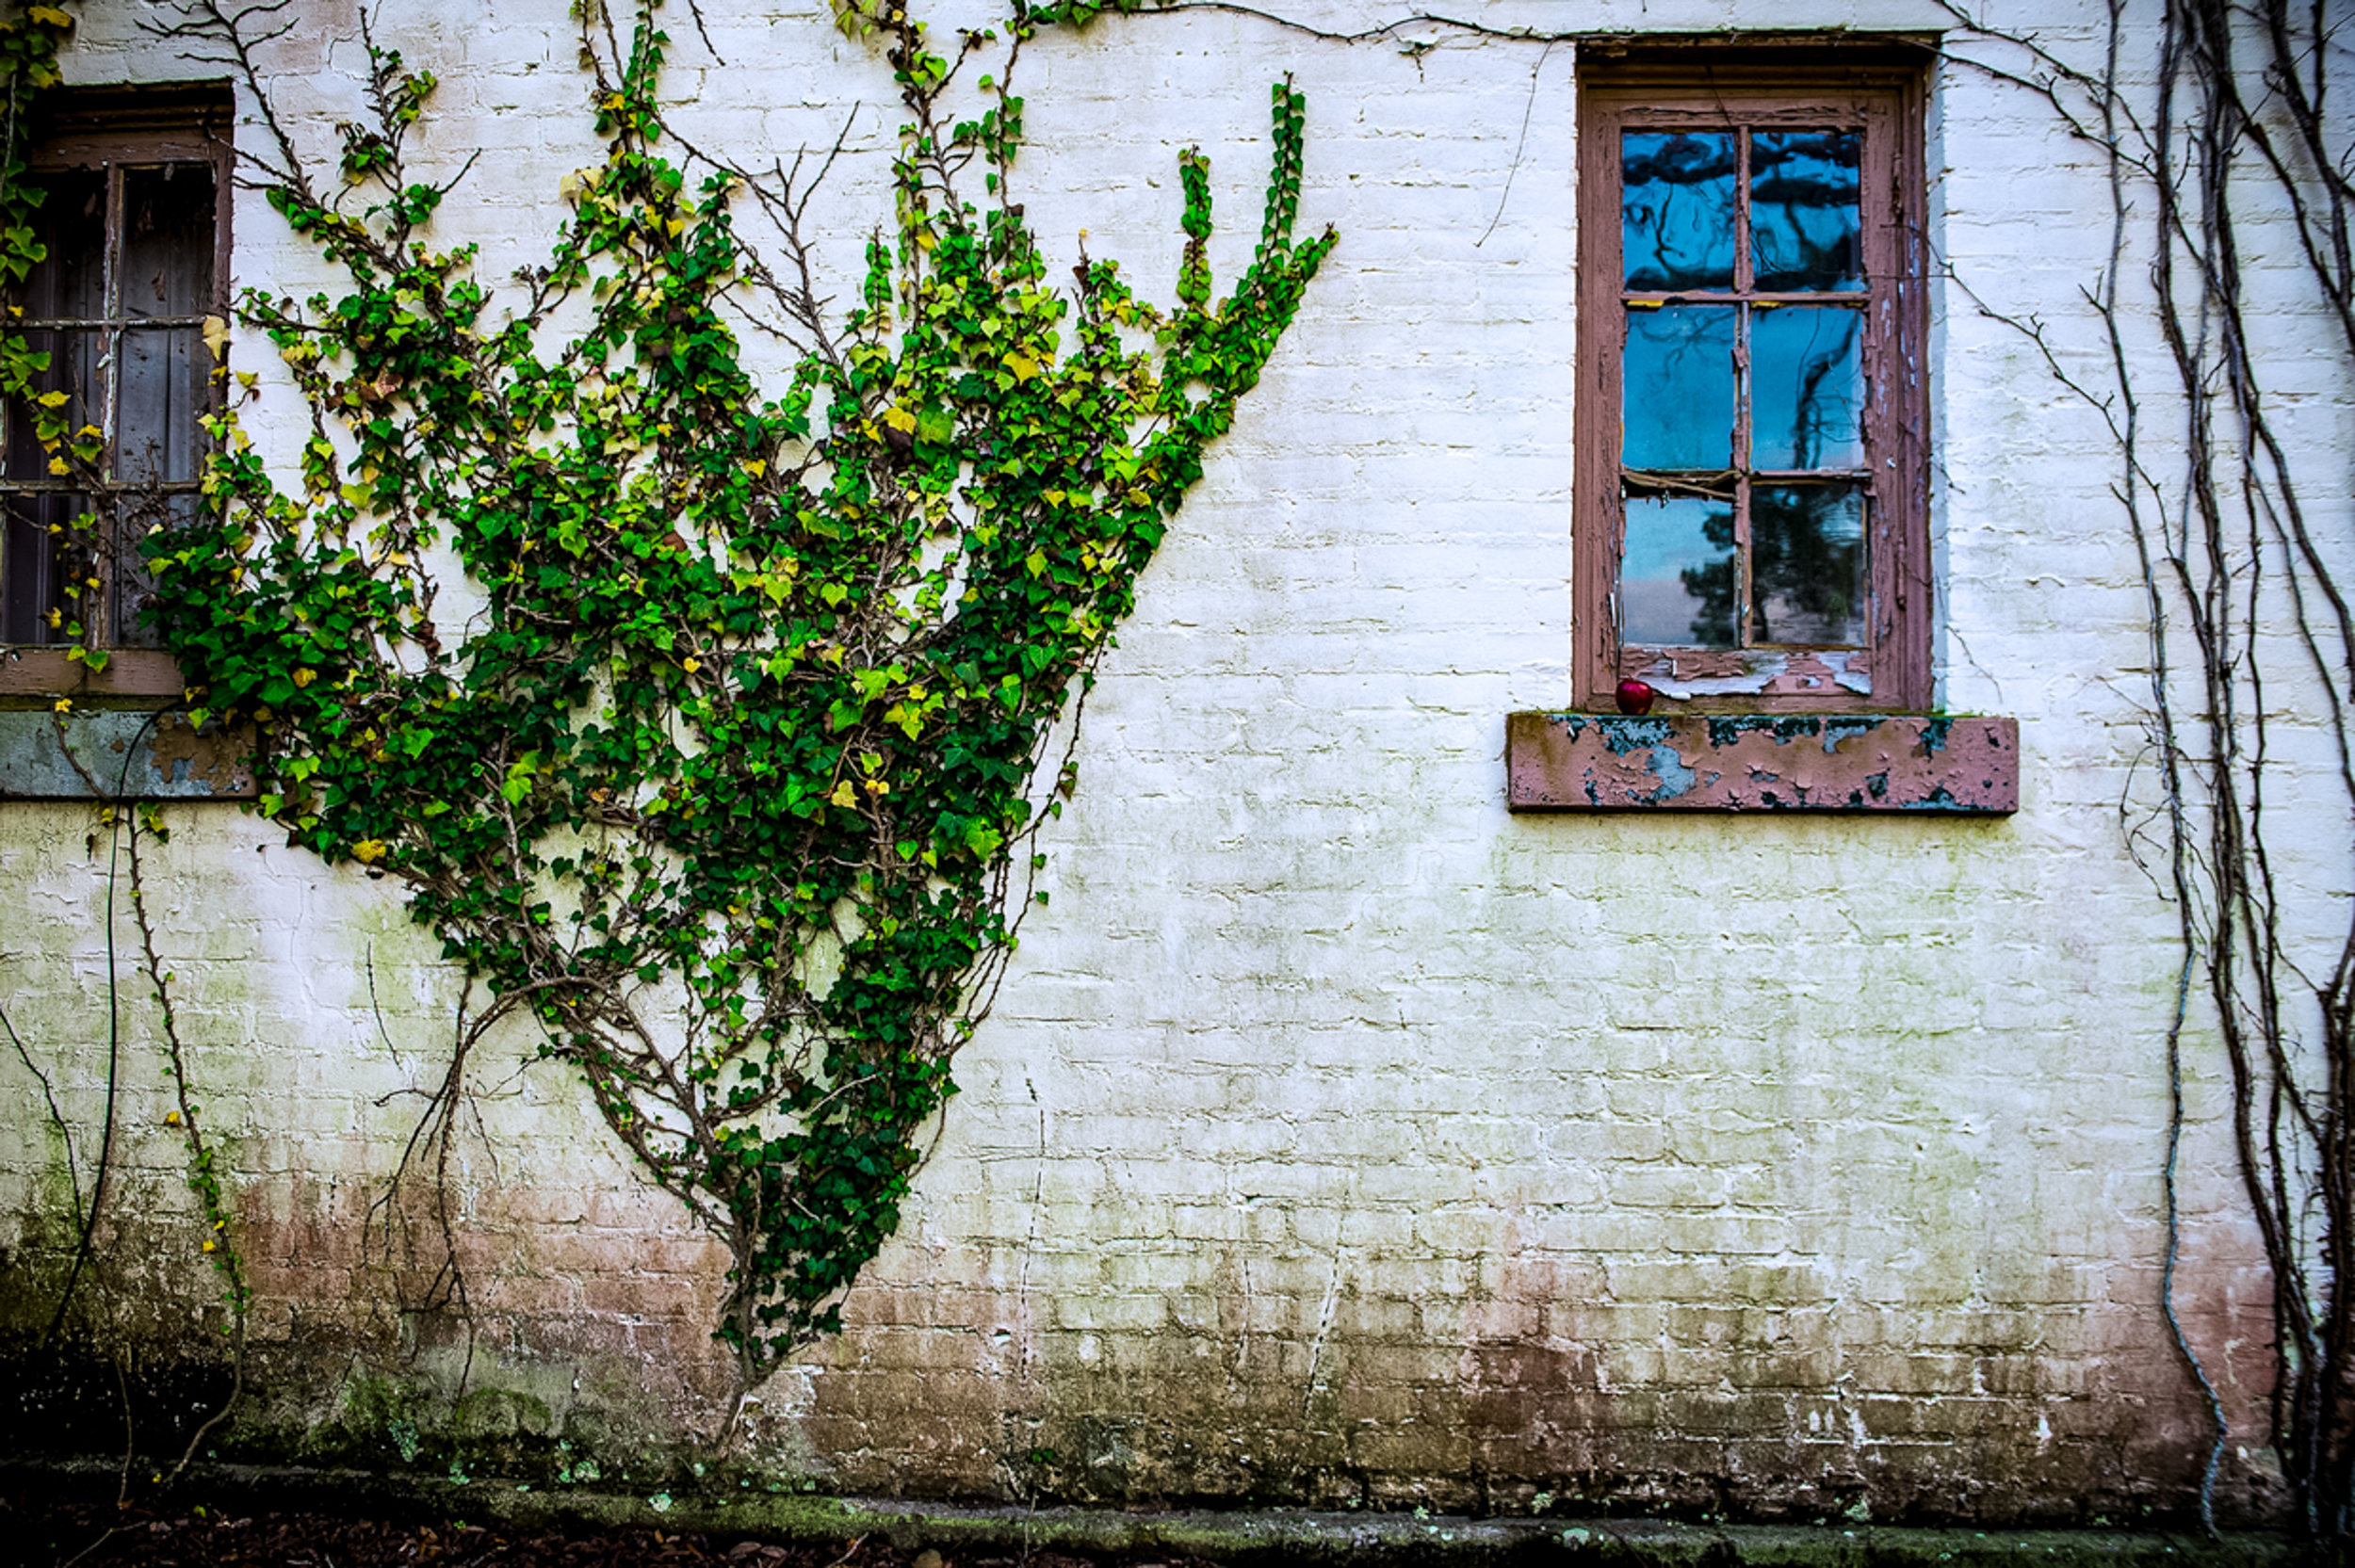 Vines cover the walls of crumbling buildings,  chipping the paint of old whites, now tainted.